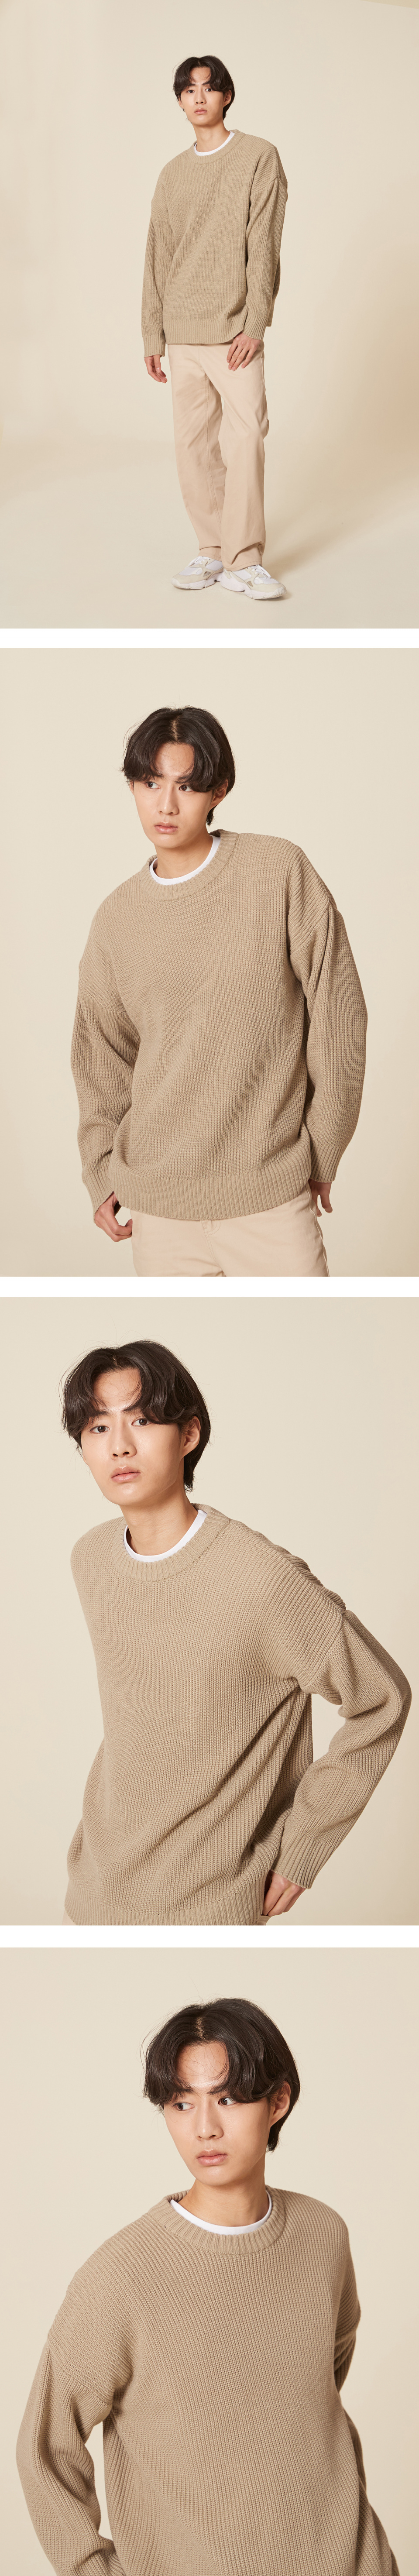 블론드나인(BLOND9) CREW NECK RIB KNIT SWEATER_IVORY